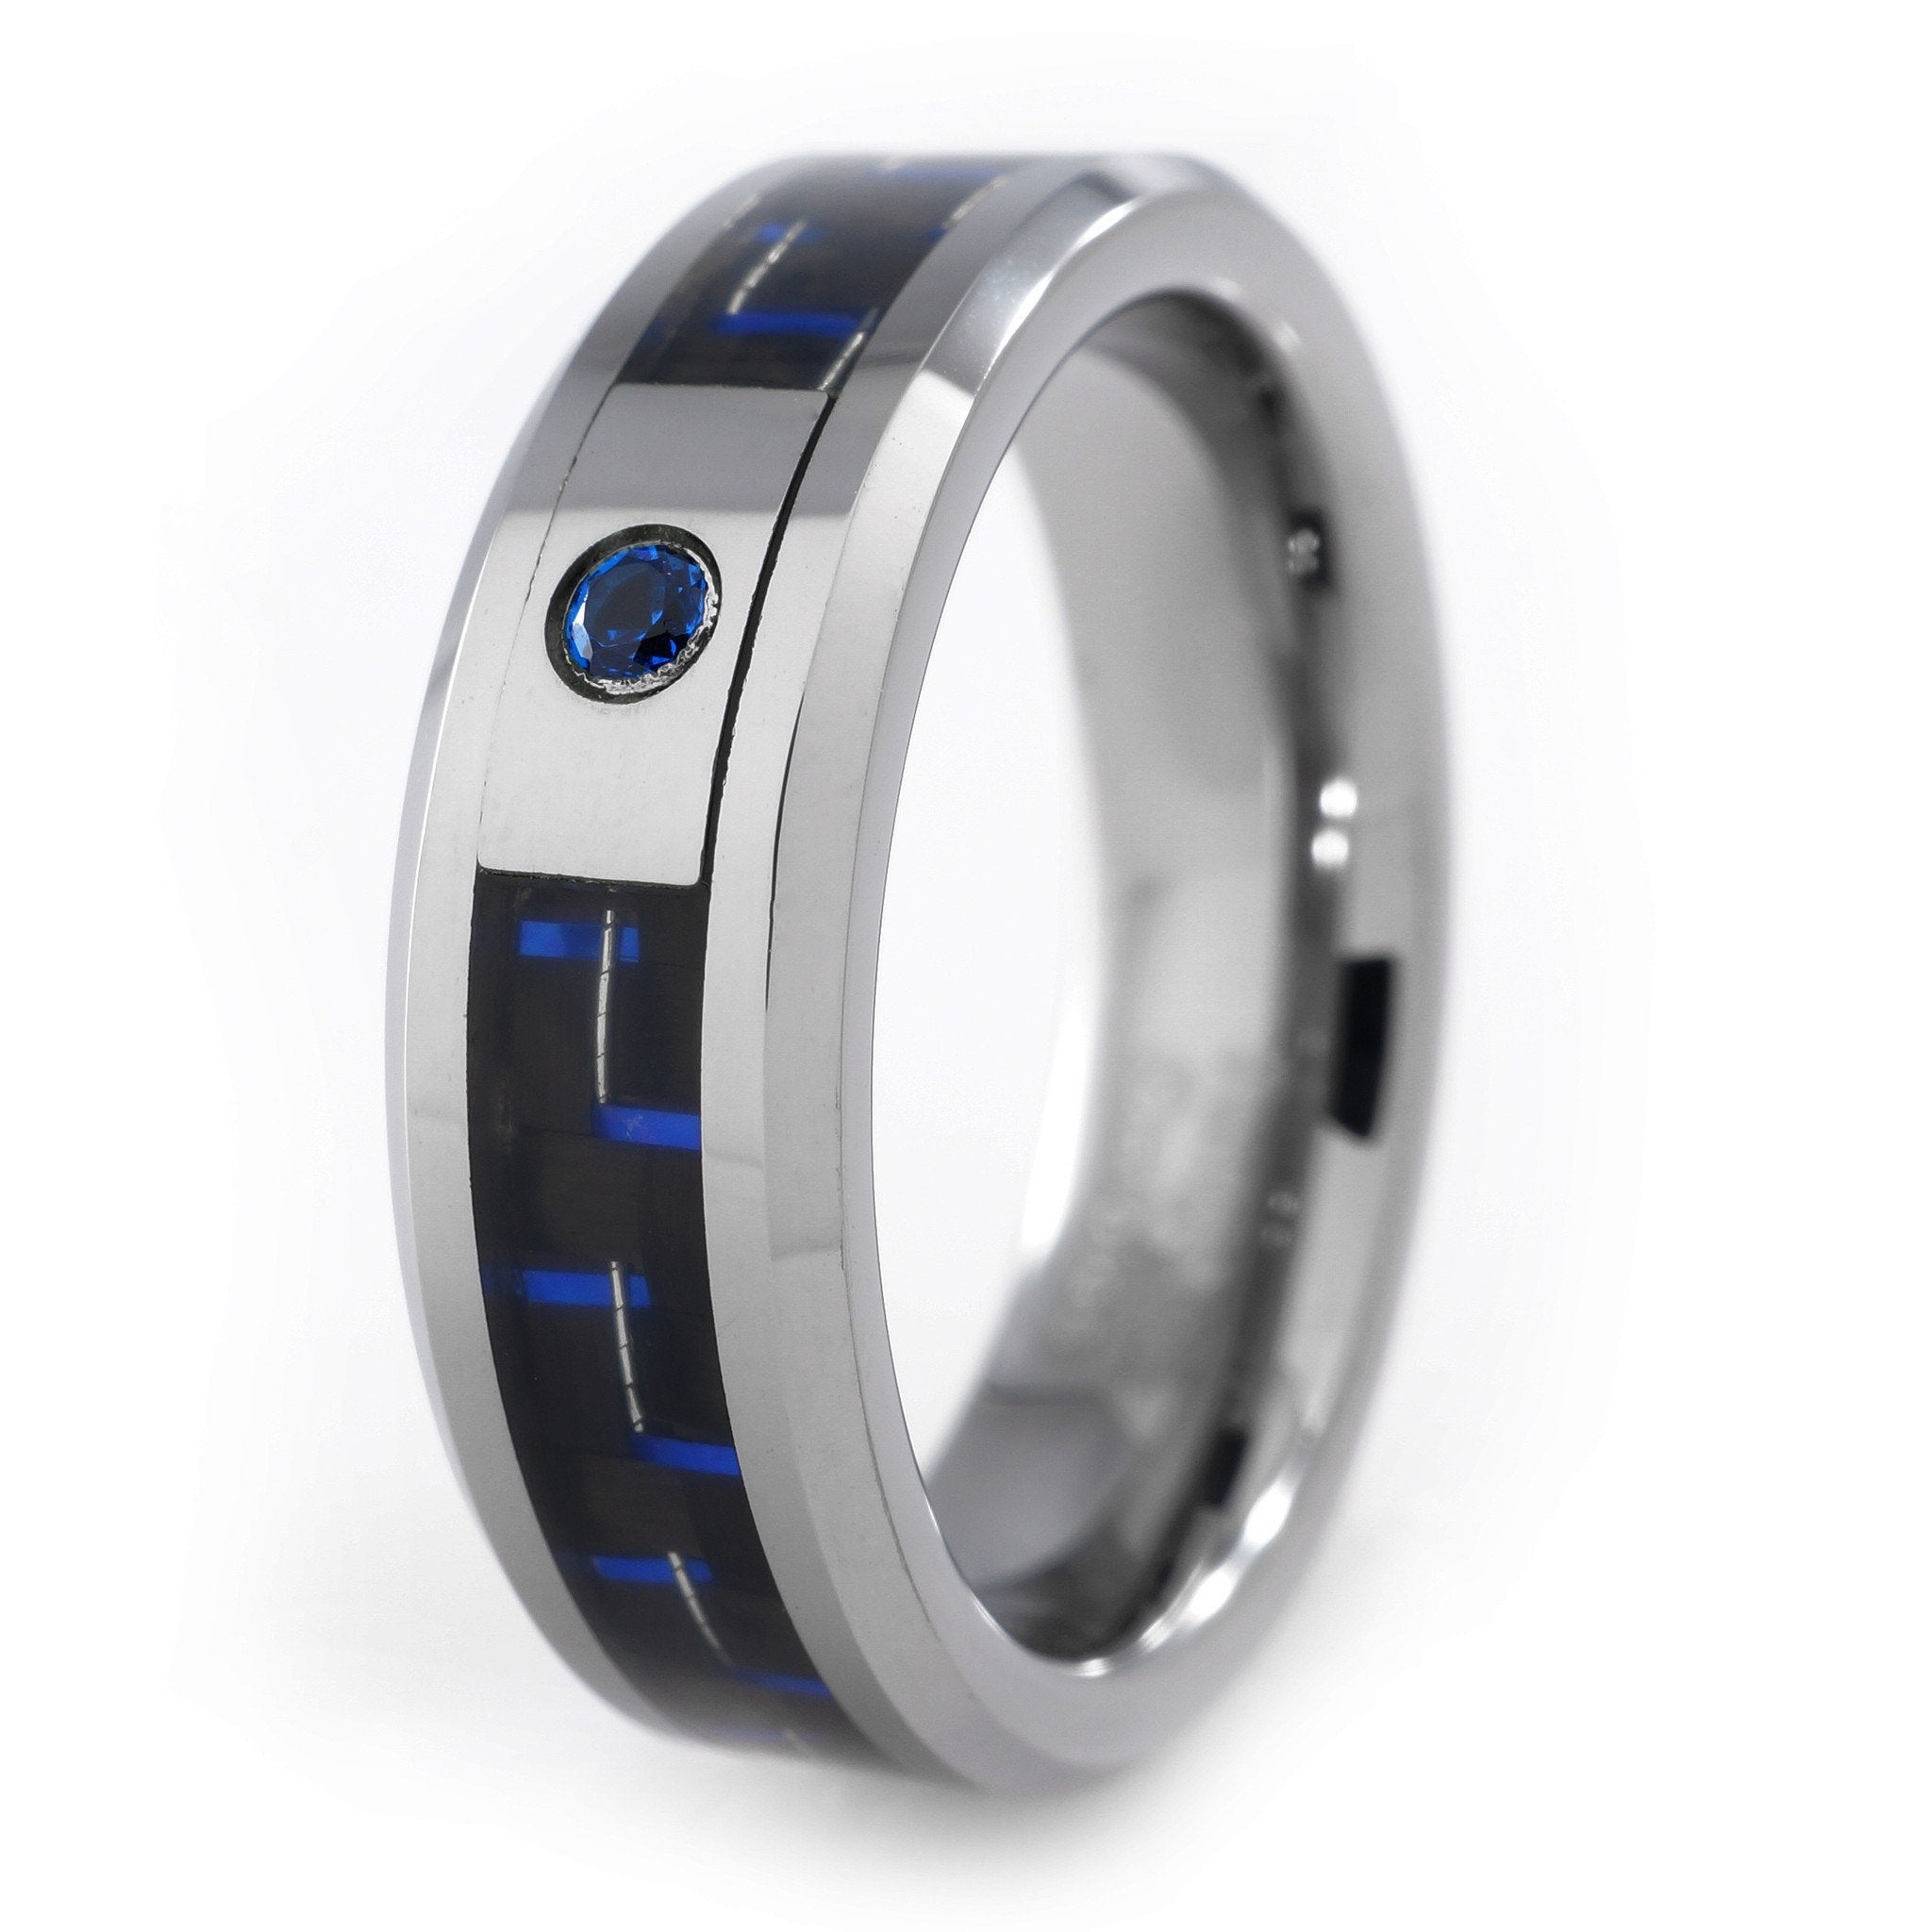 men fit ring w amazon inlay carbon fiber gray band dp cobalt high s engagement wedding polish rings com comfort